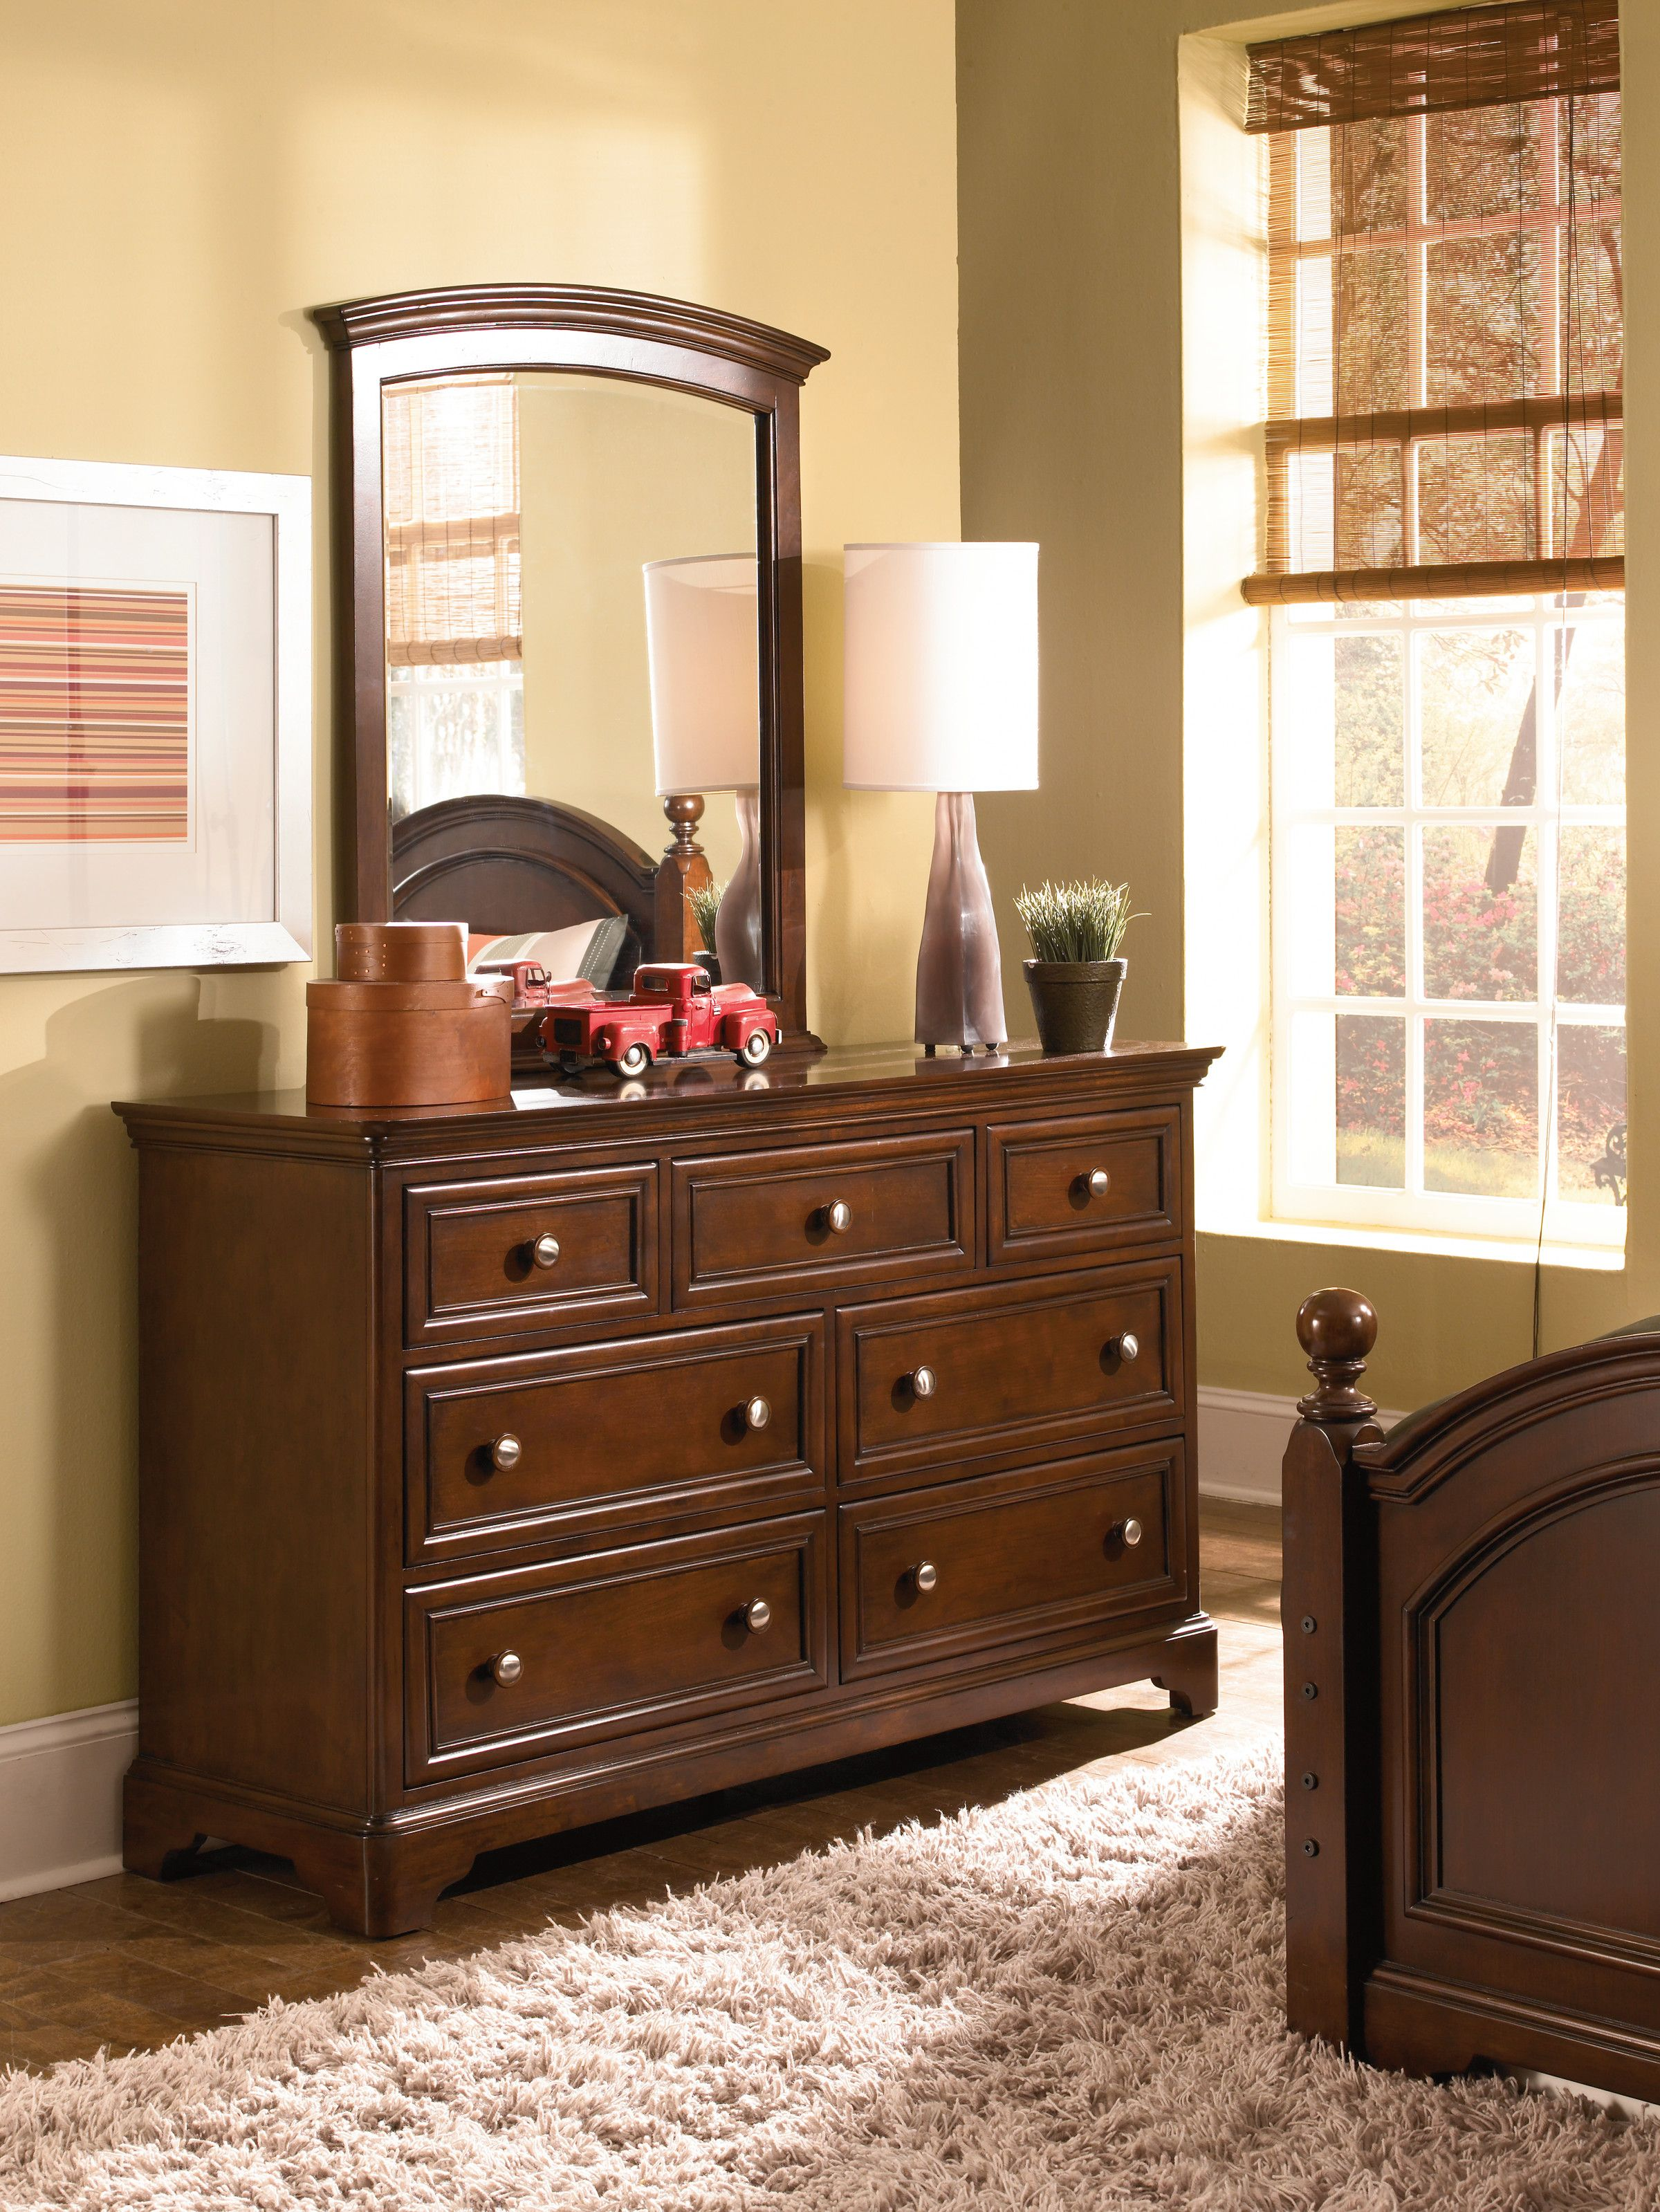 Lea Covington Collection Dresser Mirror Sets Under 500 On Clearance This Month At Lindy S Furnitu Youth Furniture Furniture Childrens Bedroom Furniture